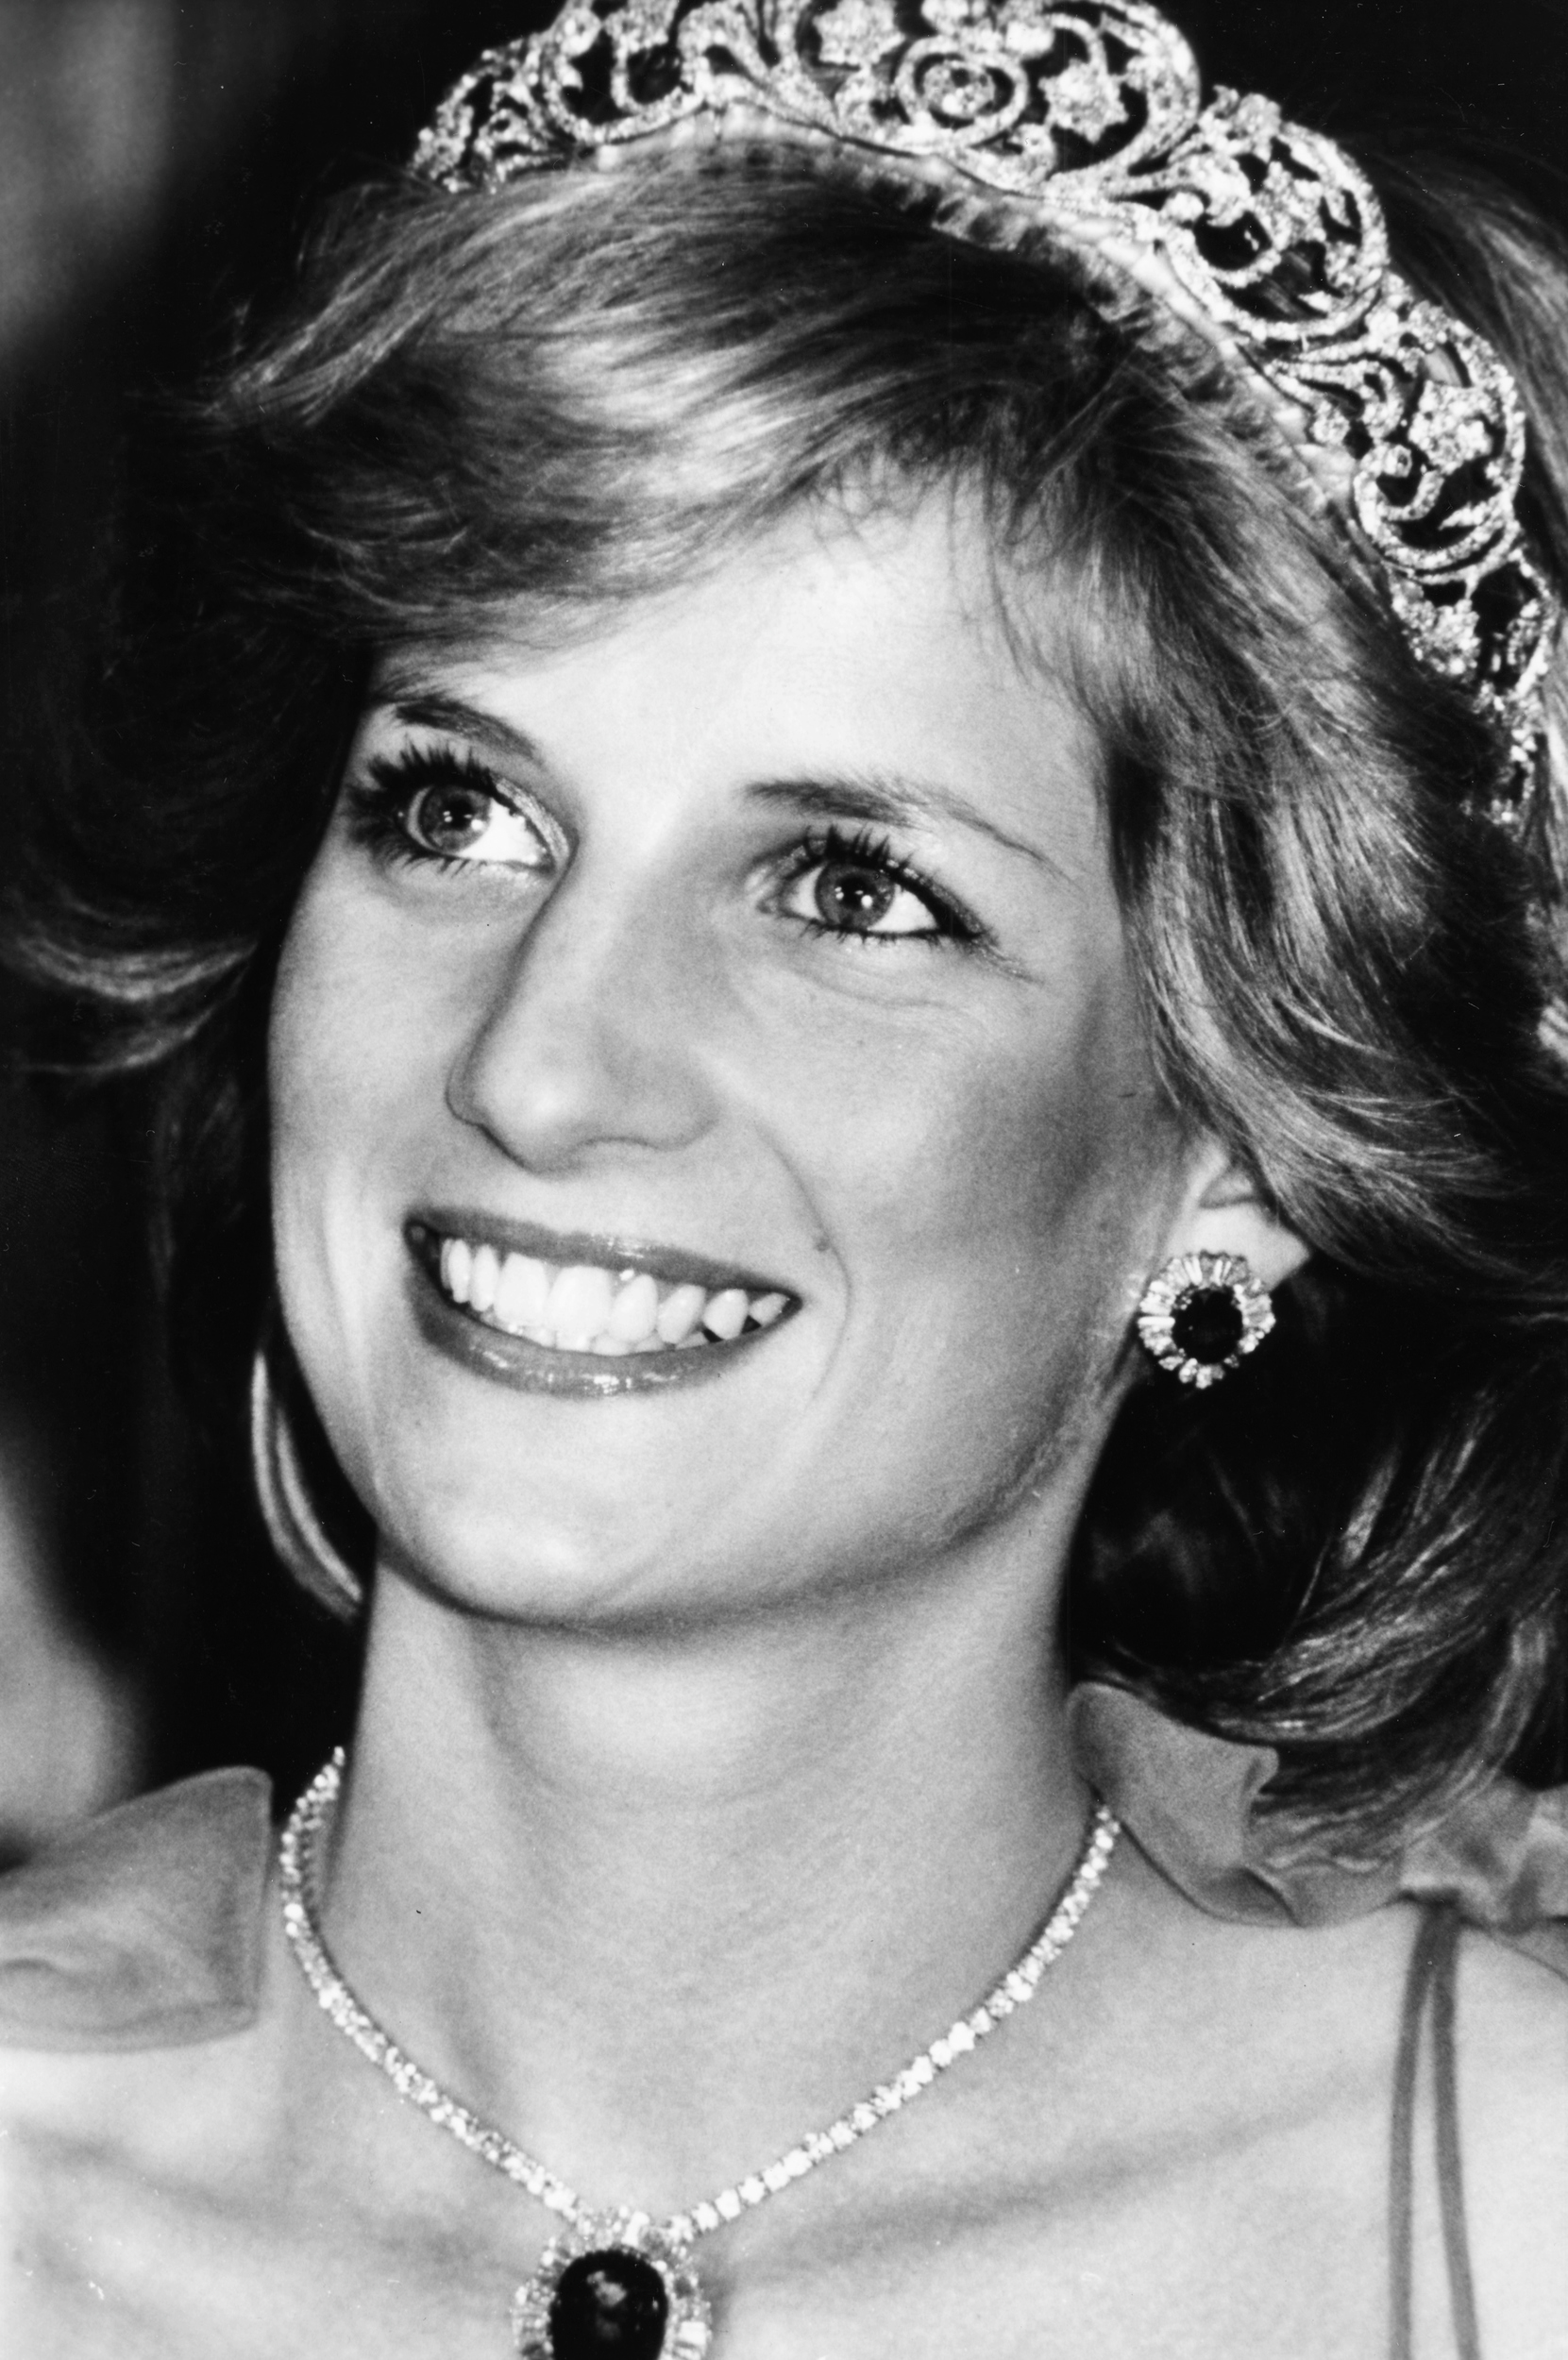 Princess Diana's ex-lover allegedly attempts to sell their intimate ...: http://www.aol.com/article/2015/11/09/princess-dianas-ex-lover-allegedly-attempts-to-sell-their-intim/21261366/